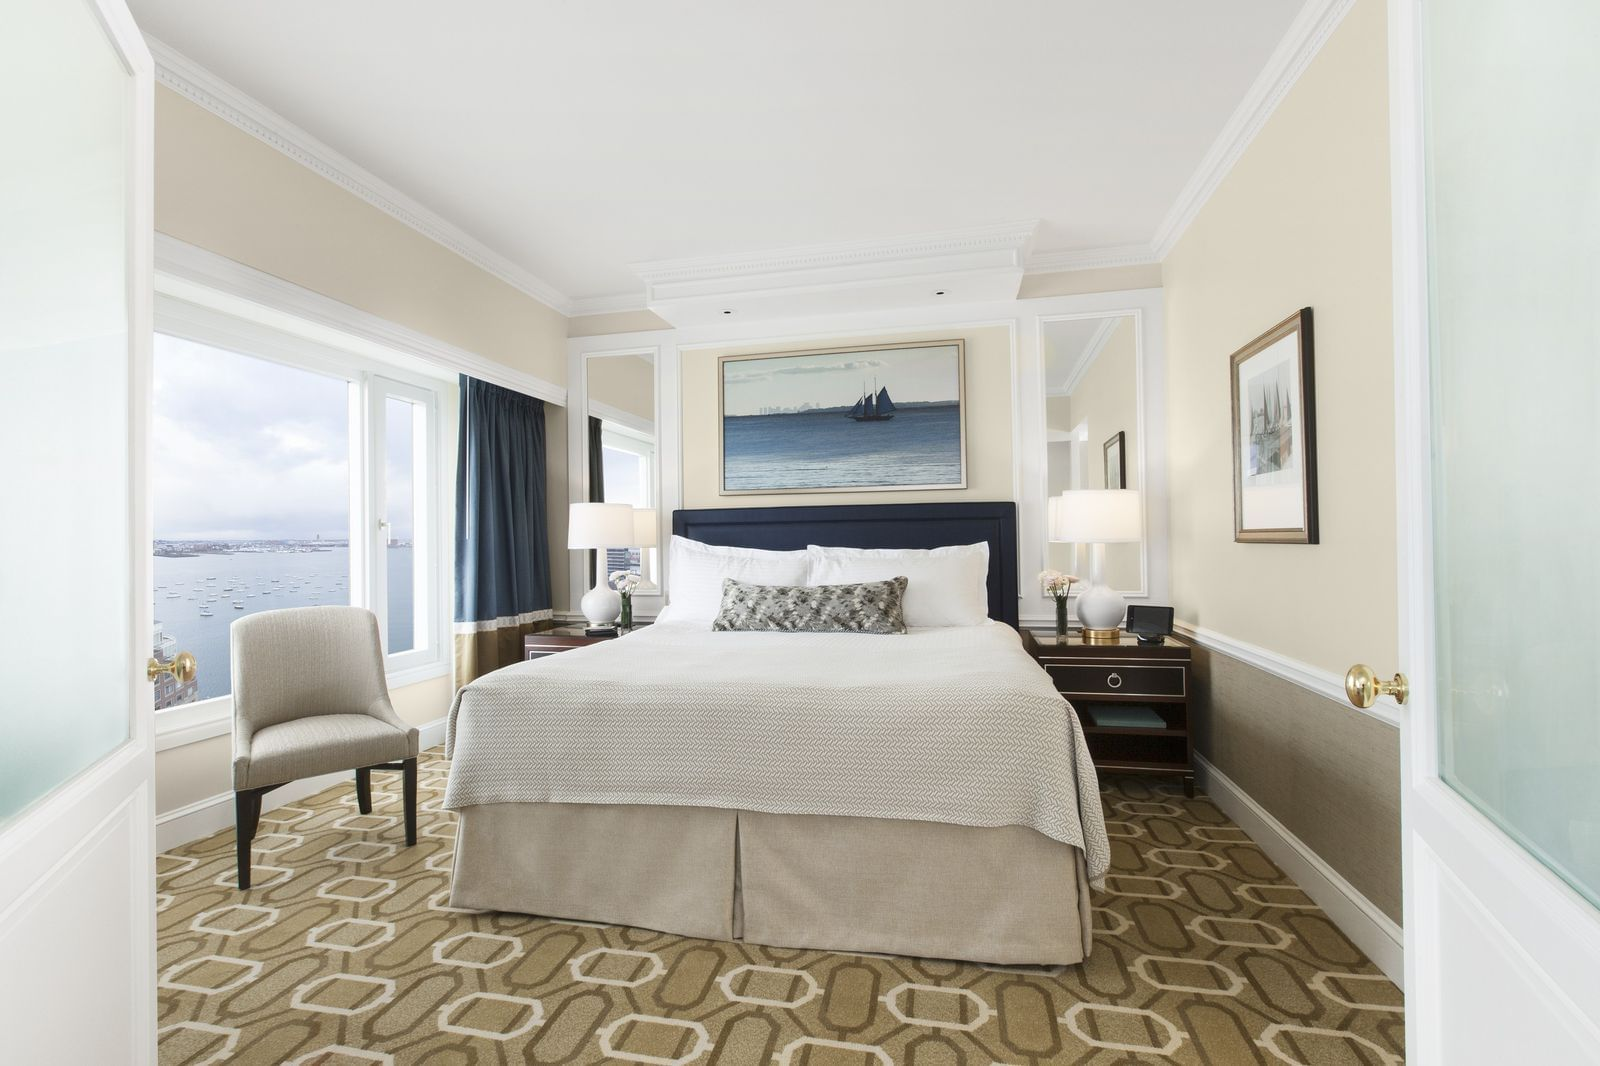 Hotel room with King bed and harbor view